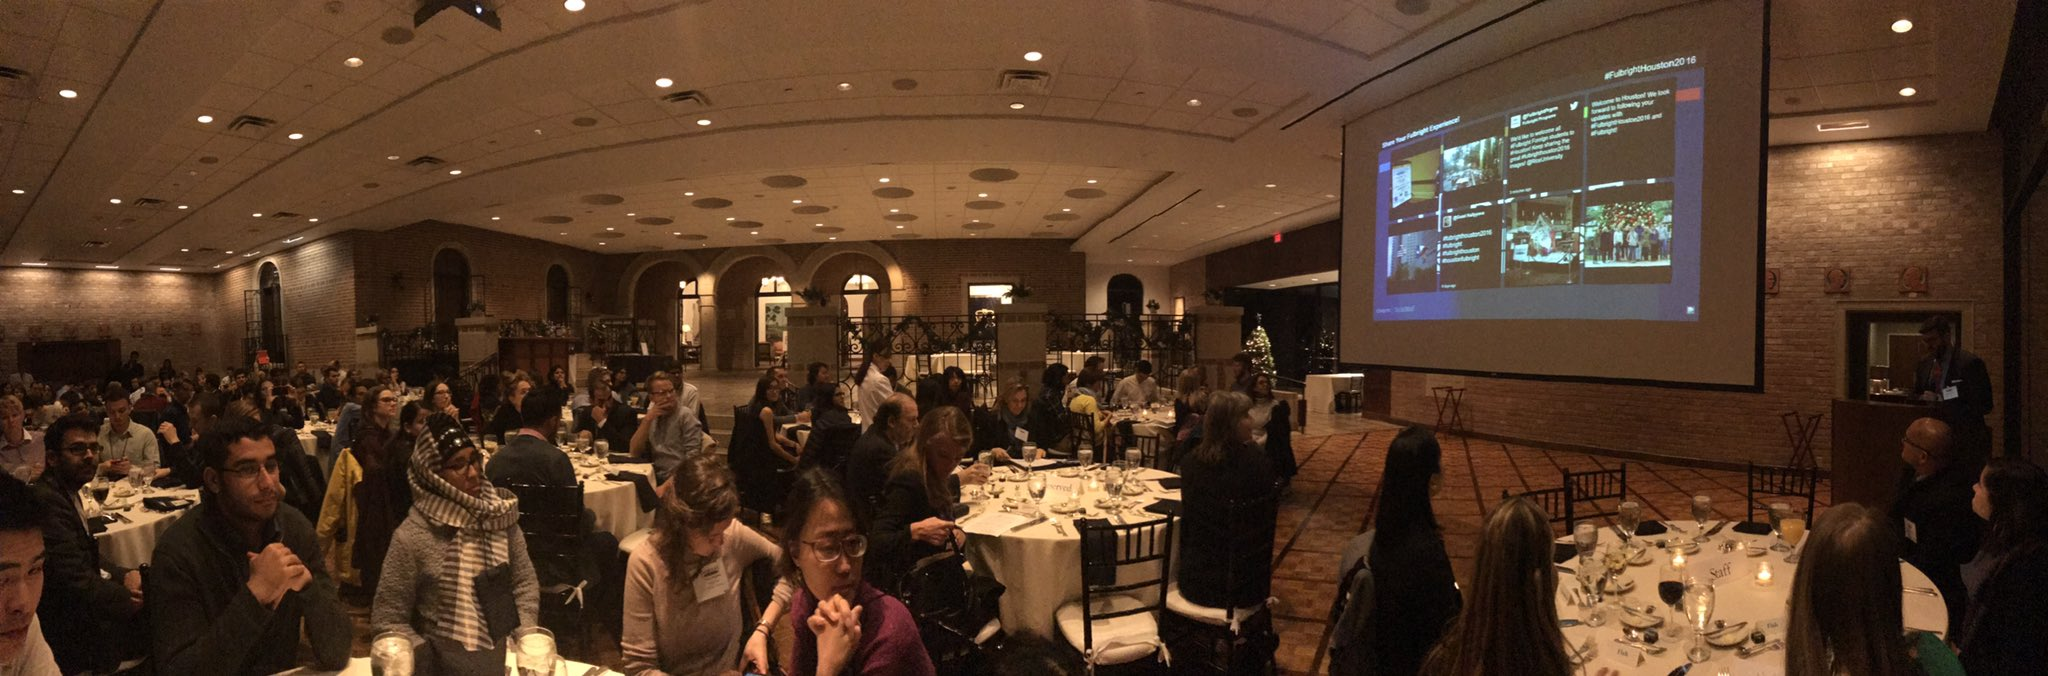 Welcome dinner at #riceuniversity for our 116 guests from over 60 countries! #fulbrighthouston2016 #fulbright @FulbrightPrgrm https://t.co/7EvUTDBMTa